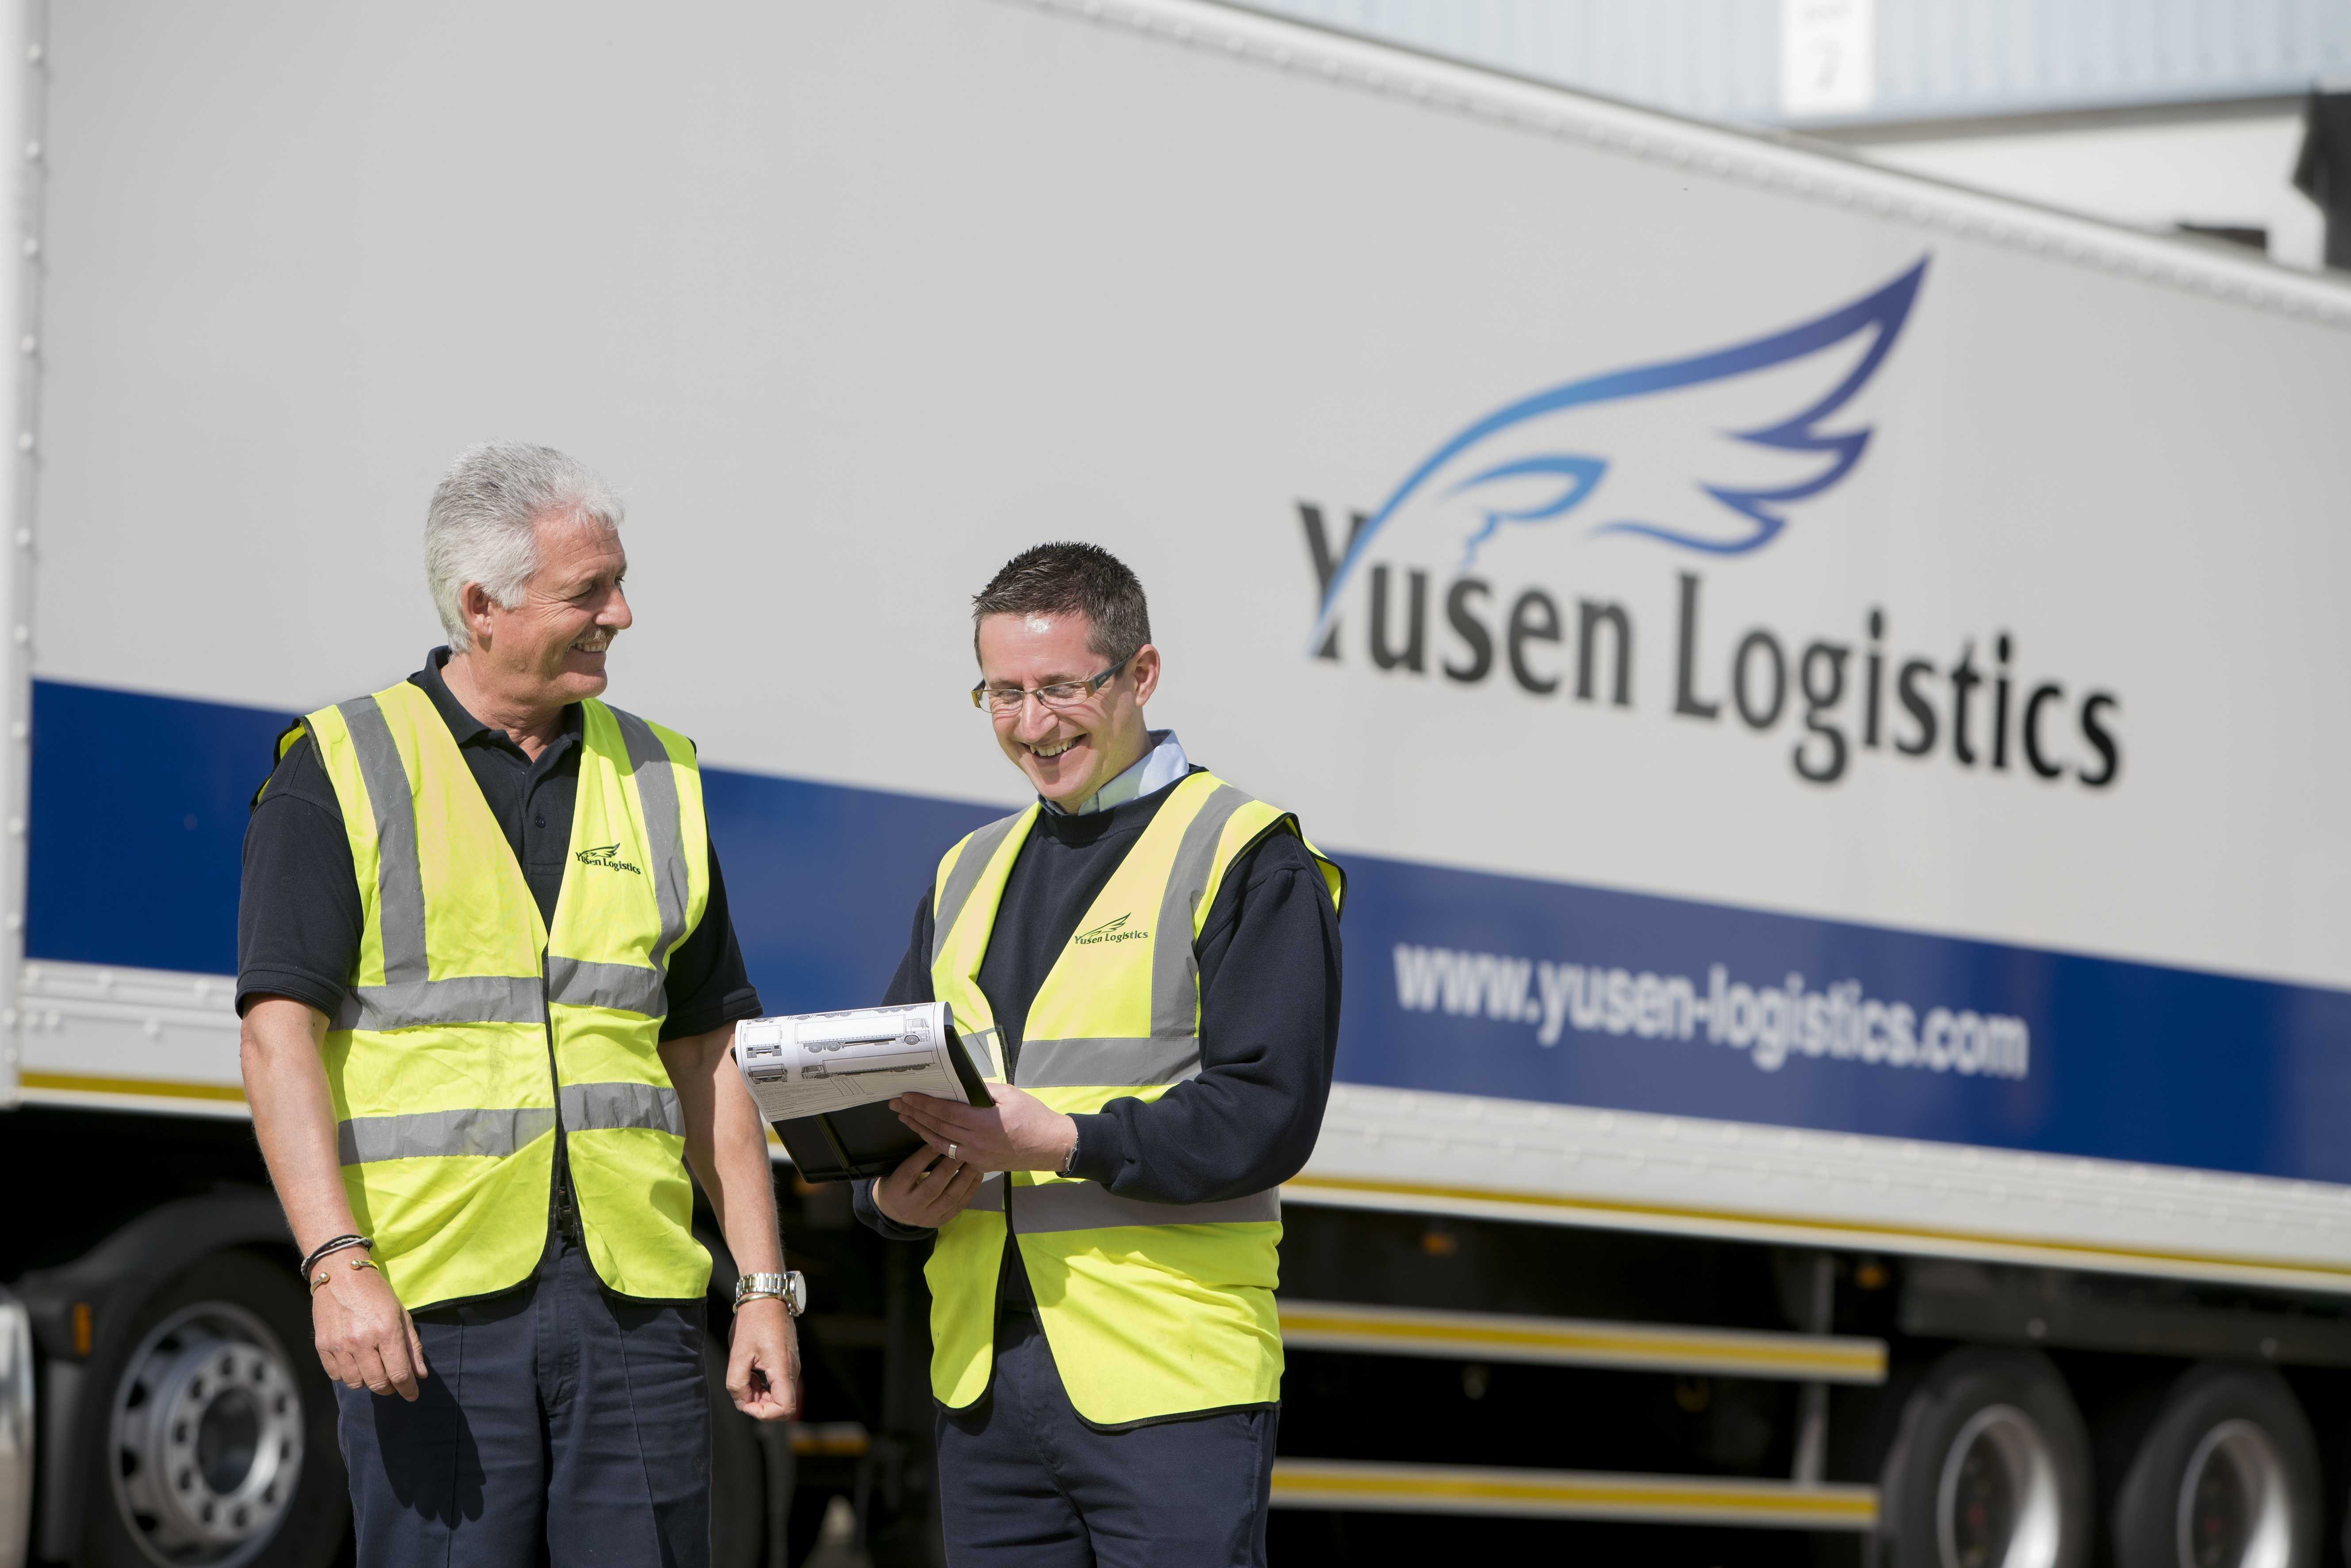 Yusen Logistics - Griffin